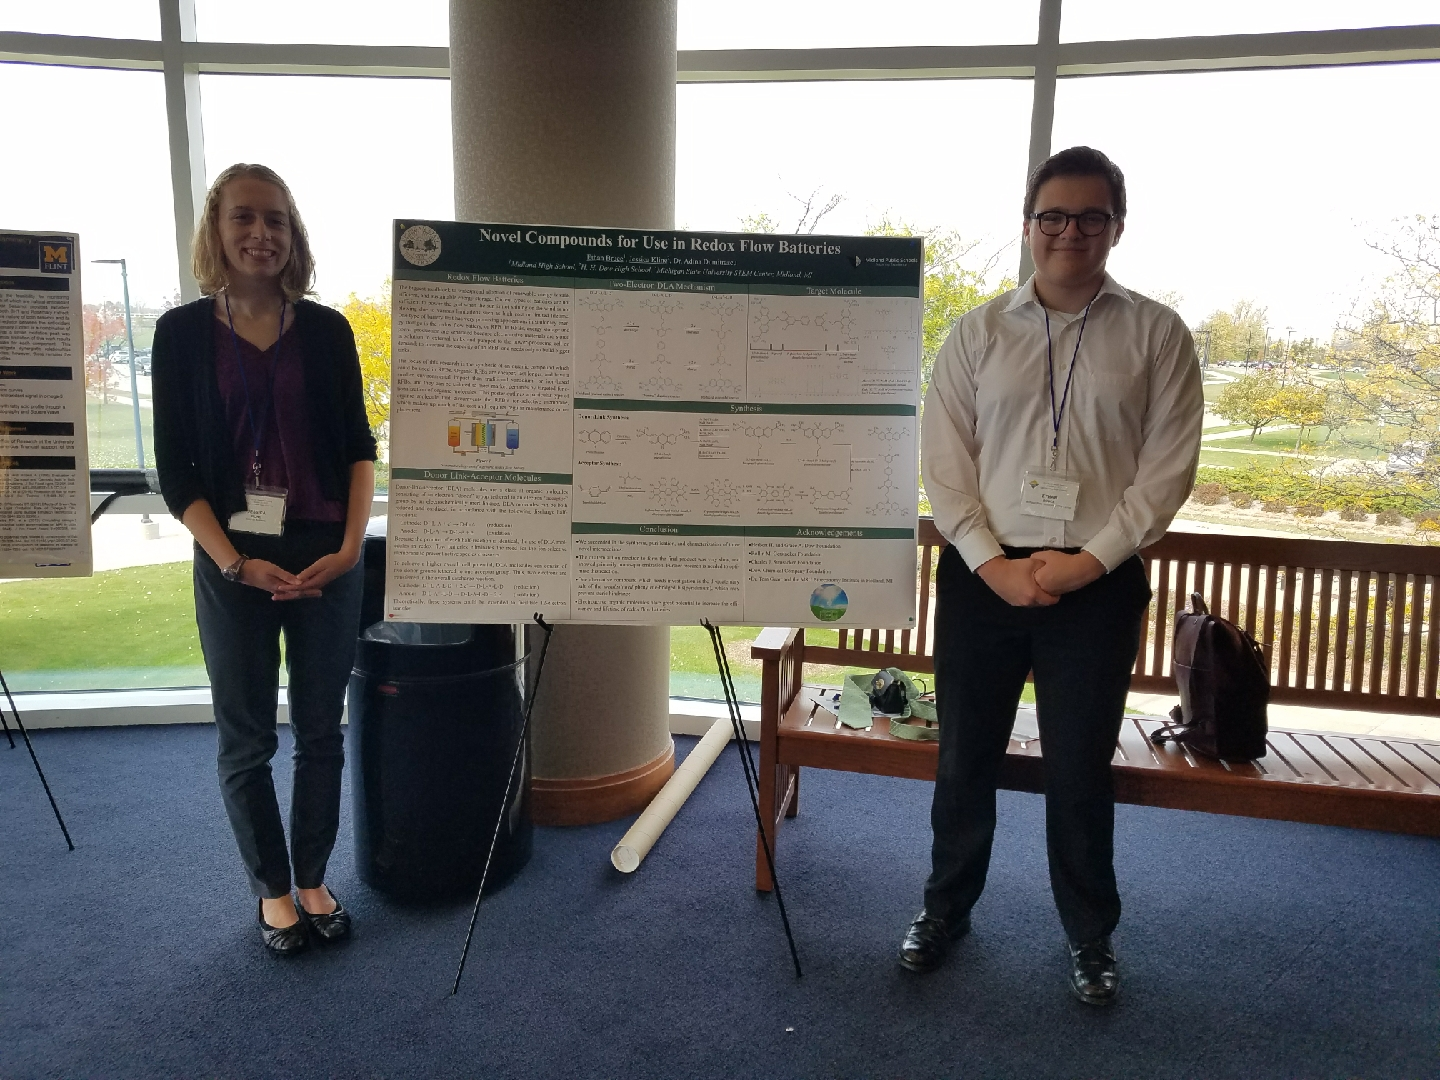 Two students present poster at a conference